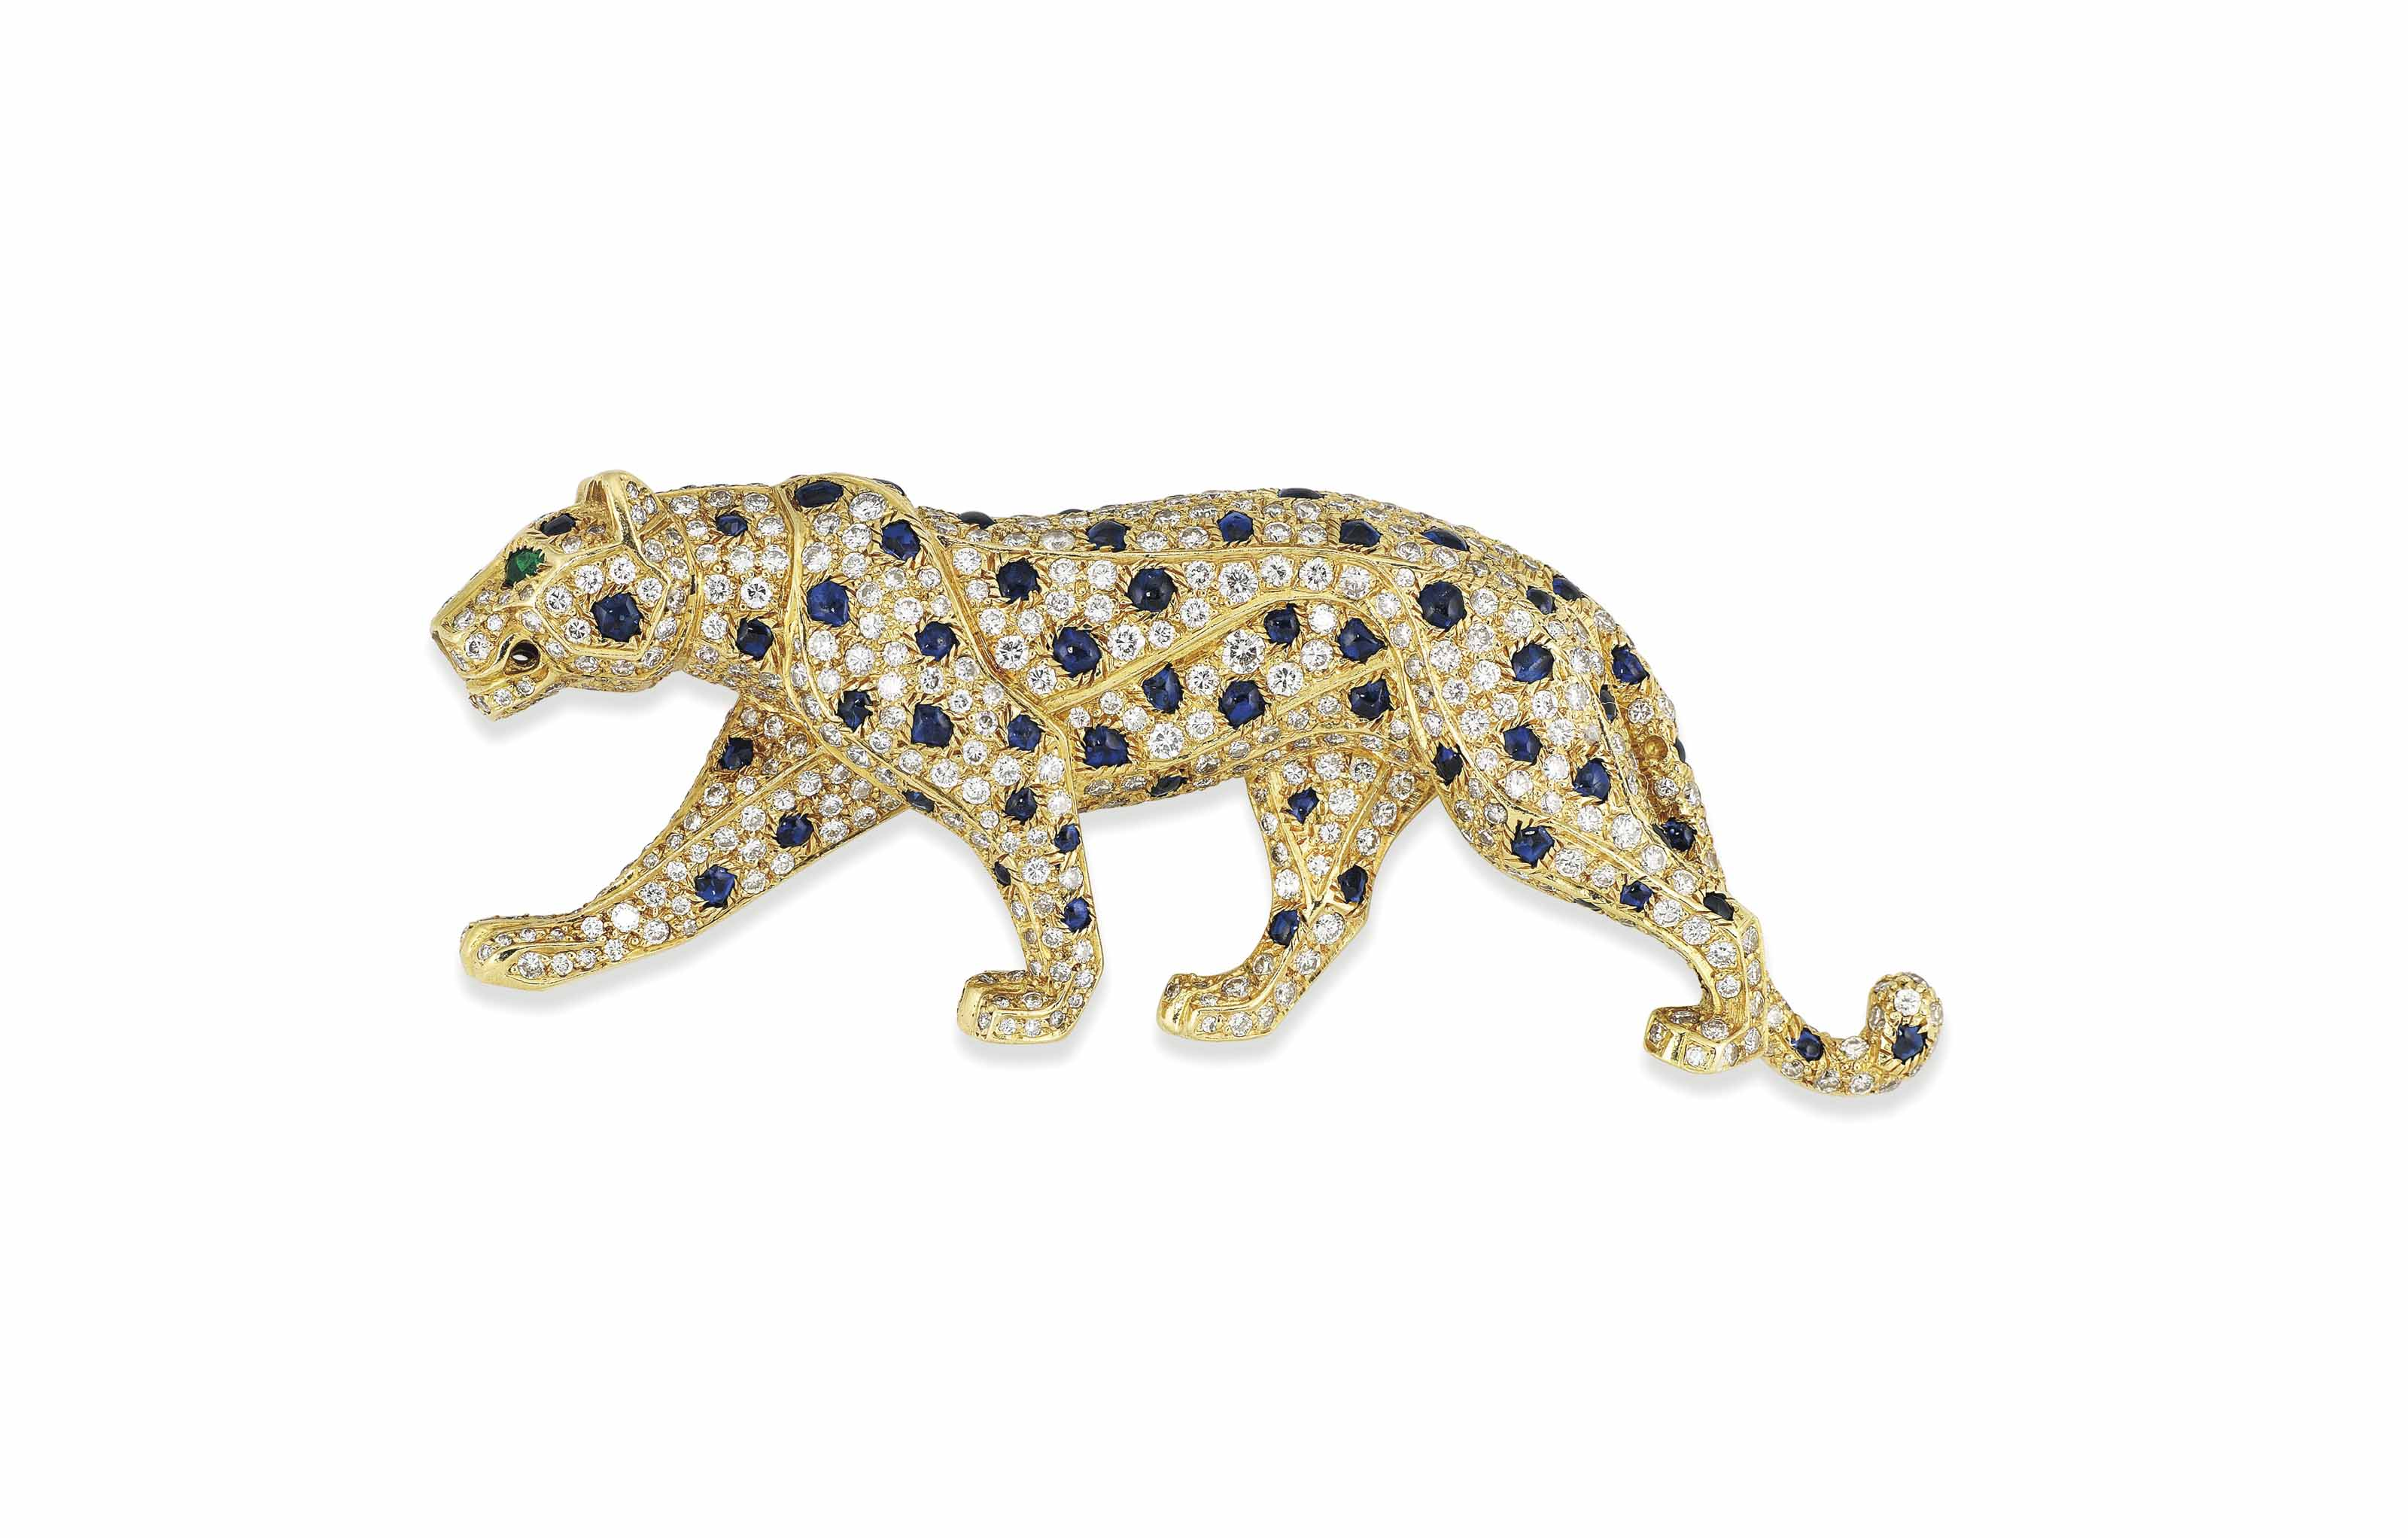 A SAPPHIRE AND DIAMOND 'PANTHERE' BROOCH, BY CARTIER